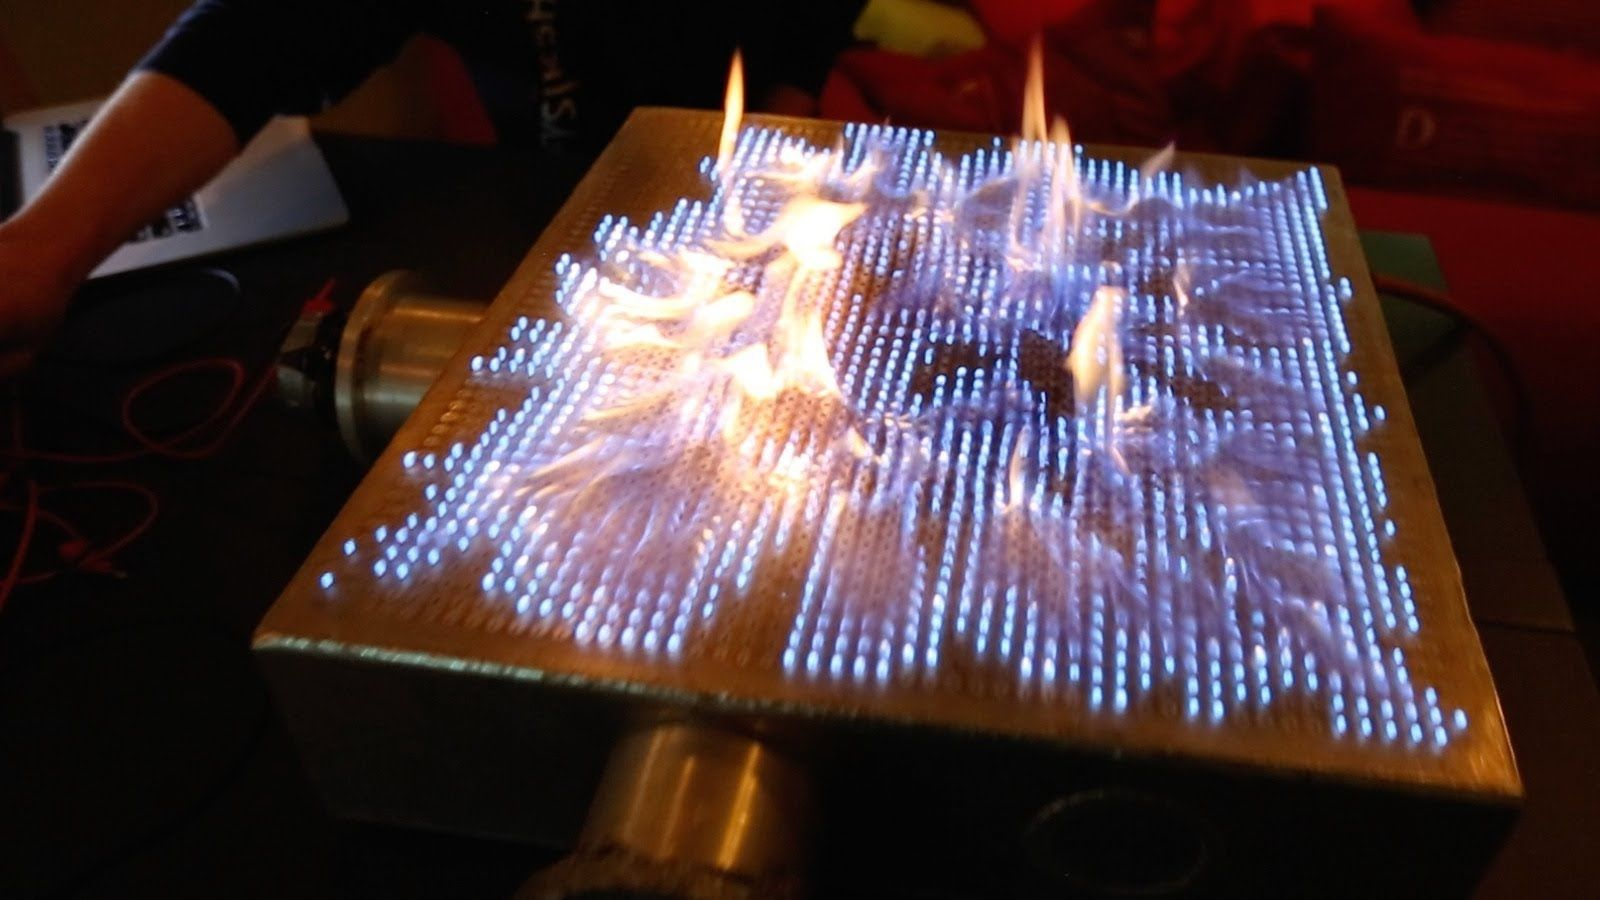 Pyro Board A Fascinating Demonstration Of Sound Waves Interacting